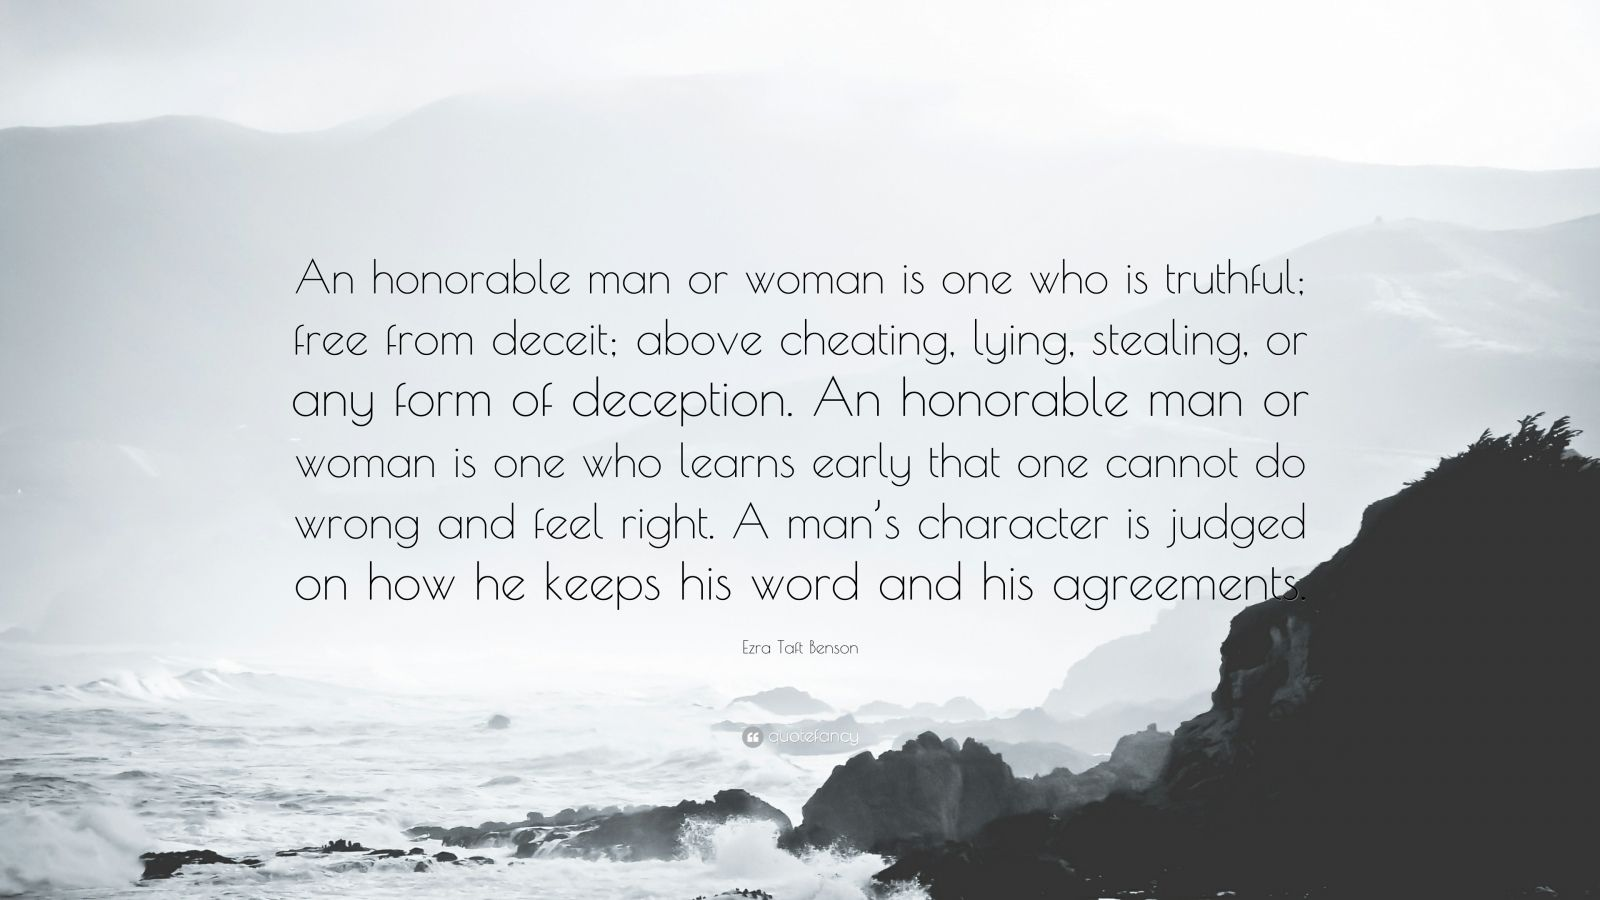 "Ezra Taft Benson Quote: ""An honorable man or woman is one who is truthful; free from deceit; above cheating, lying, stealing, or any form of deception. An honorable man or woman is one who learns early that one cannot do wrong and feel right. A man's character is judged on how he keeps his word and his agreements."""